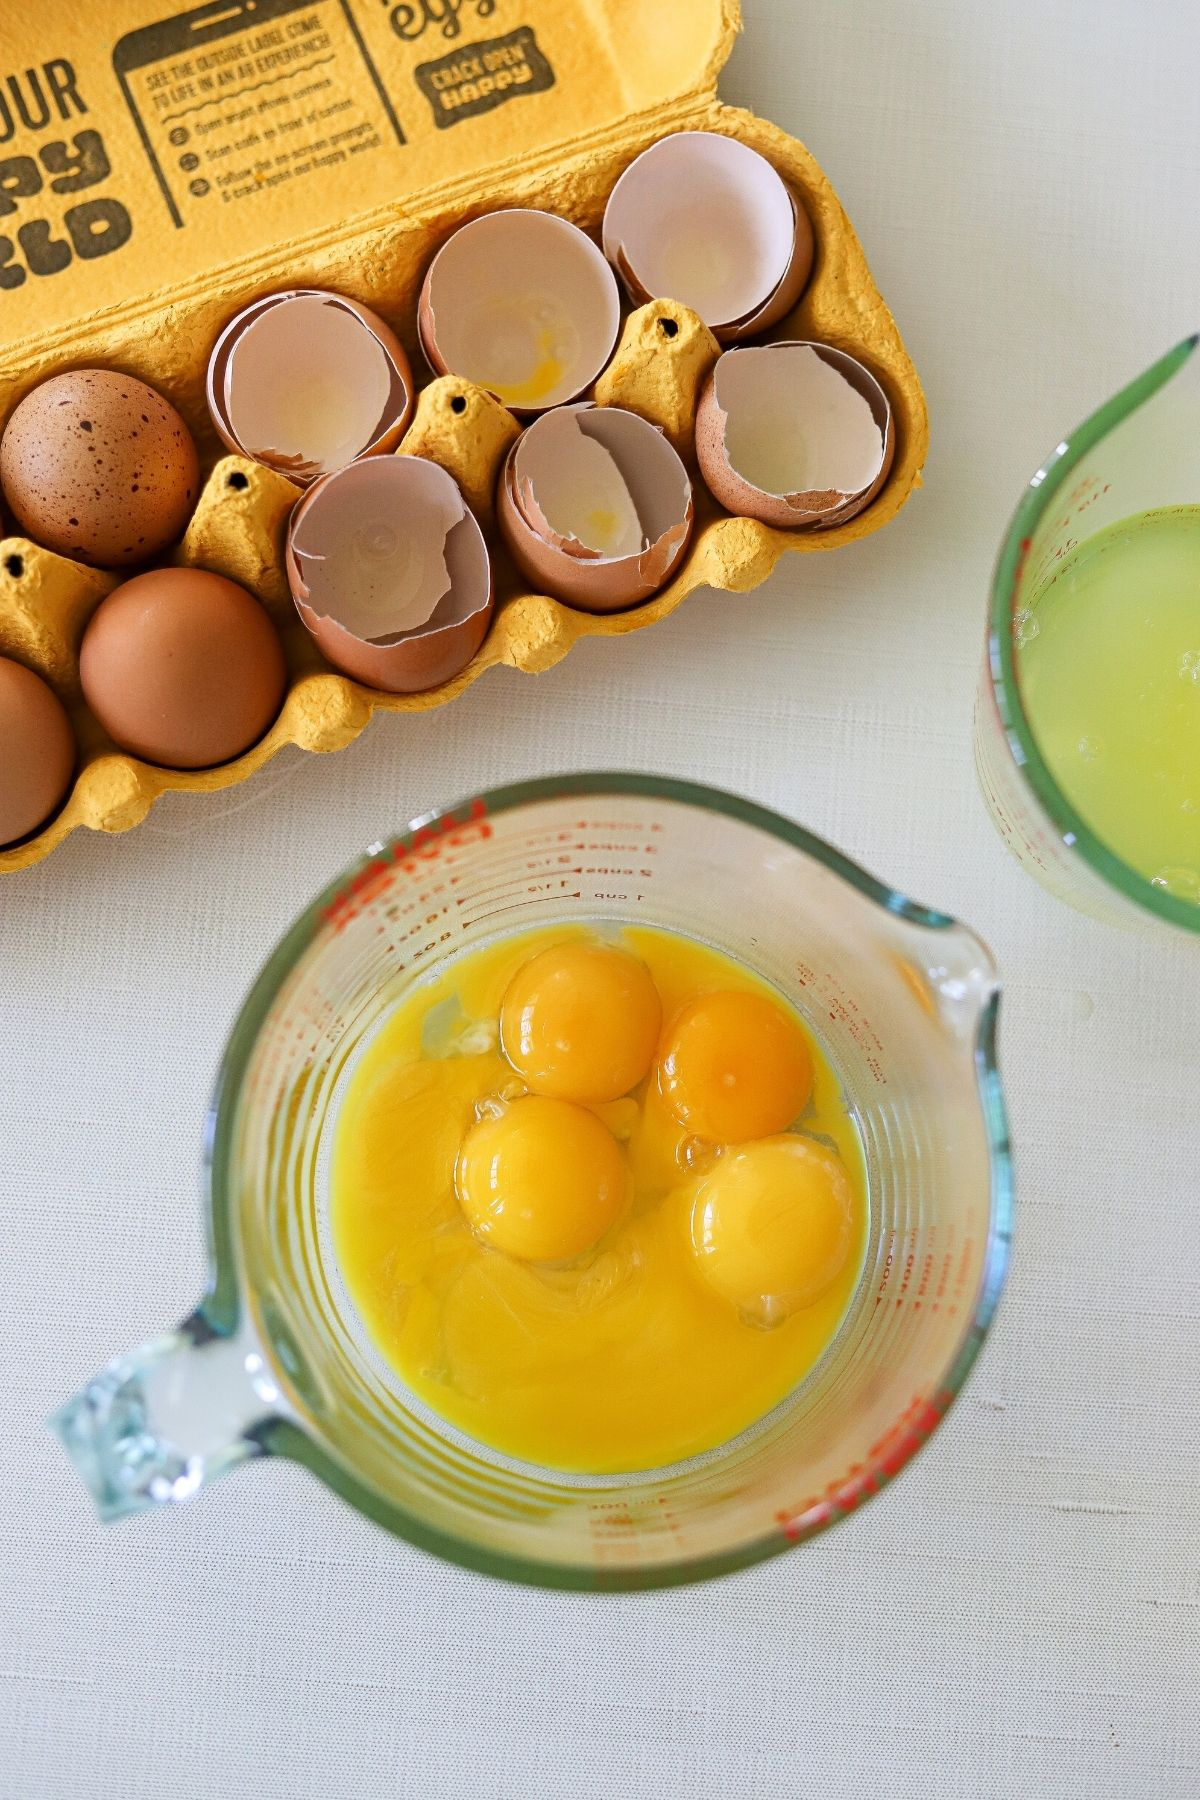 Egg yolks and whites separated into 2 measuring cups